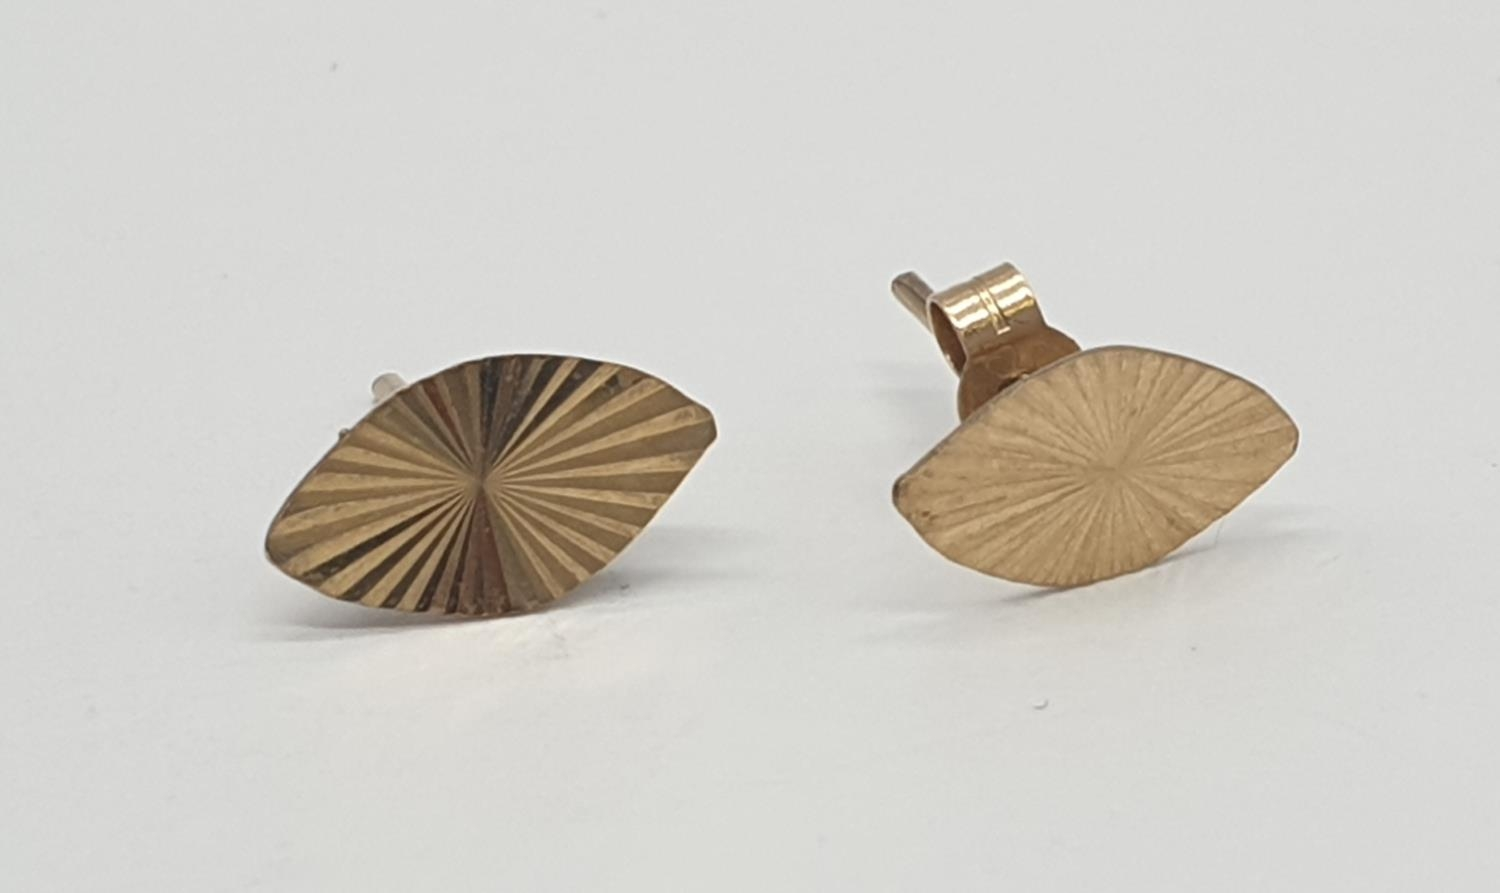 2x pairs of 9ct gold earrings (2) - Image 5 of 5